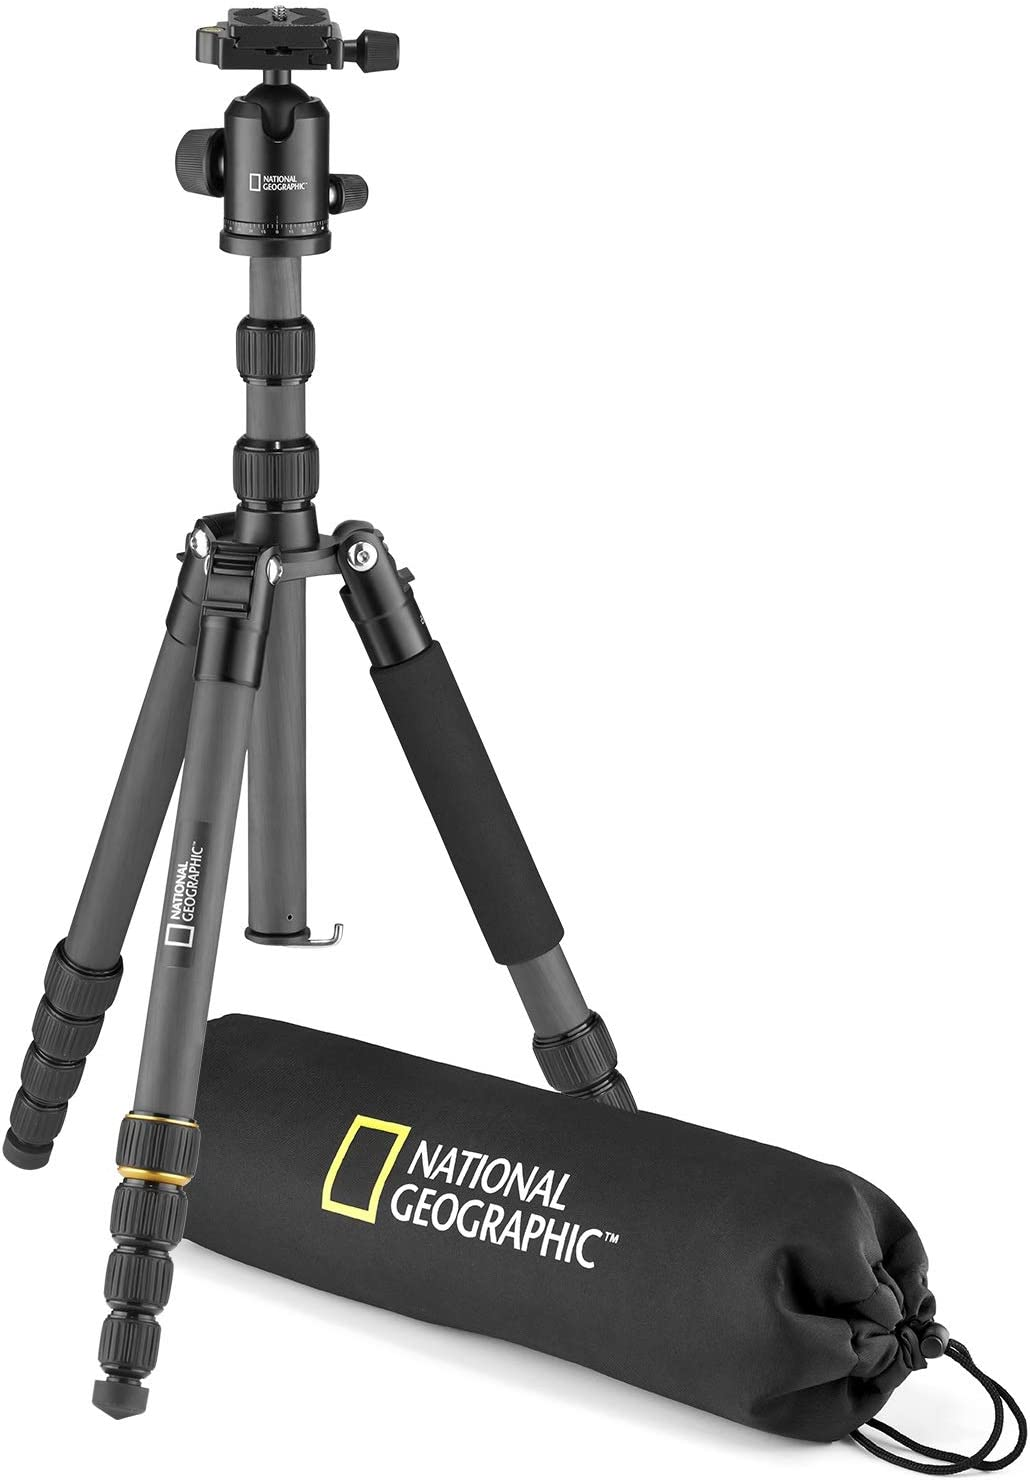 NATIONAL GEOGRAPHIC Travel Photo Tripod Kit with Monopod